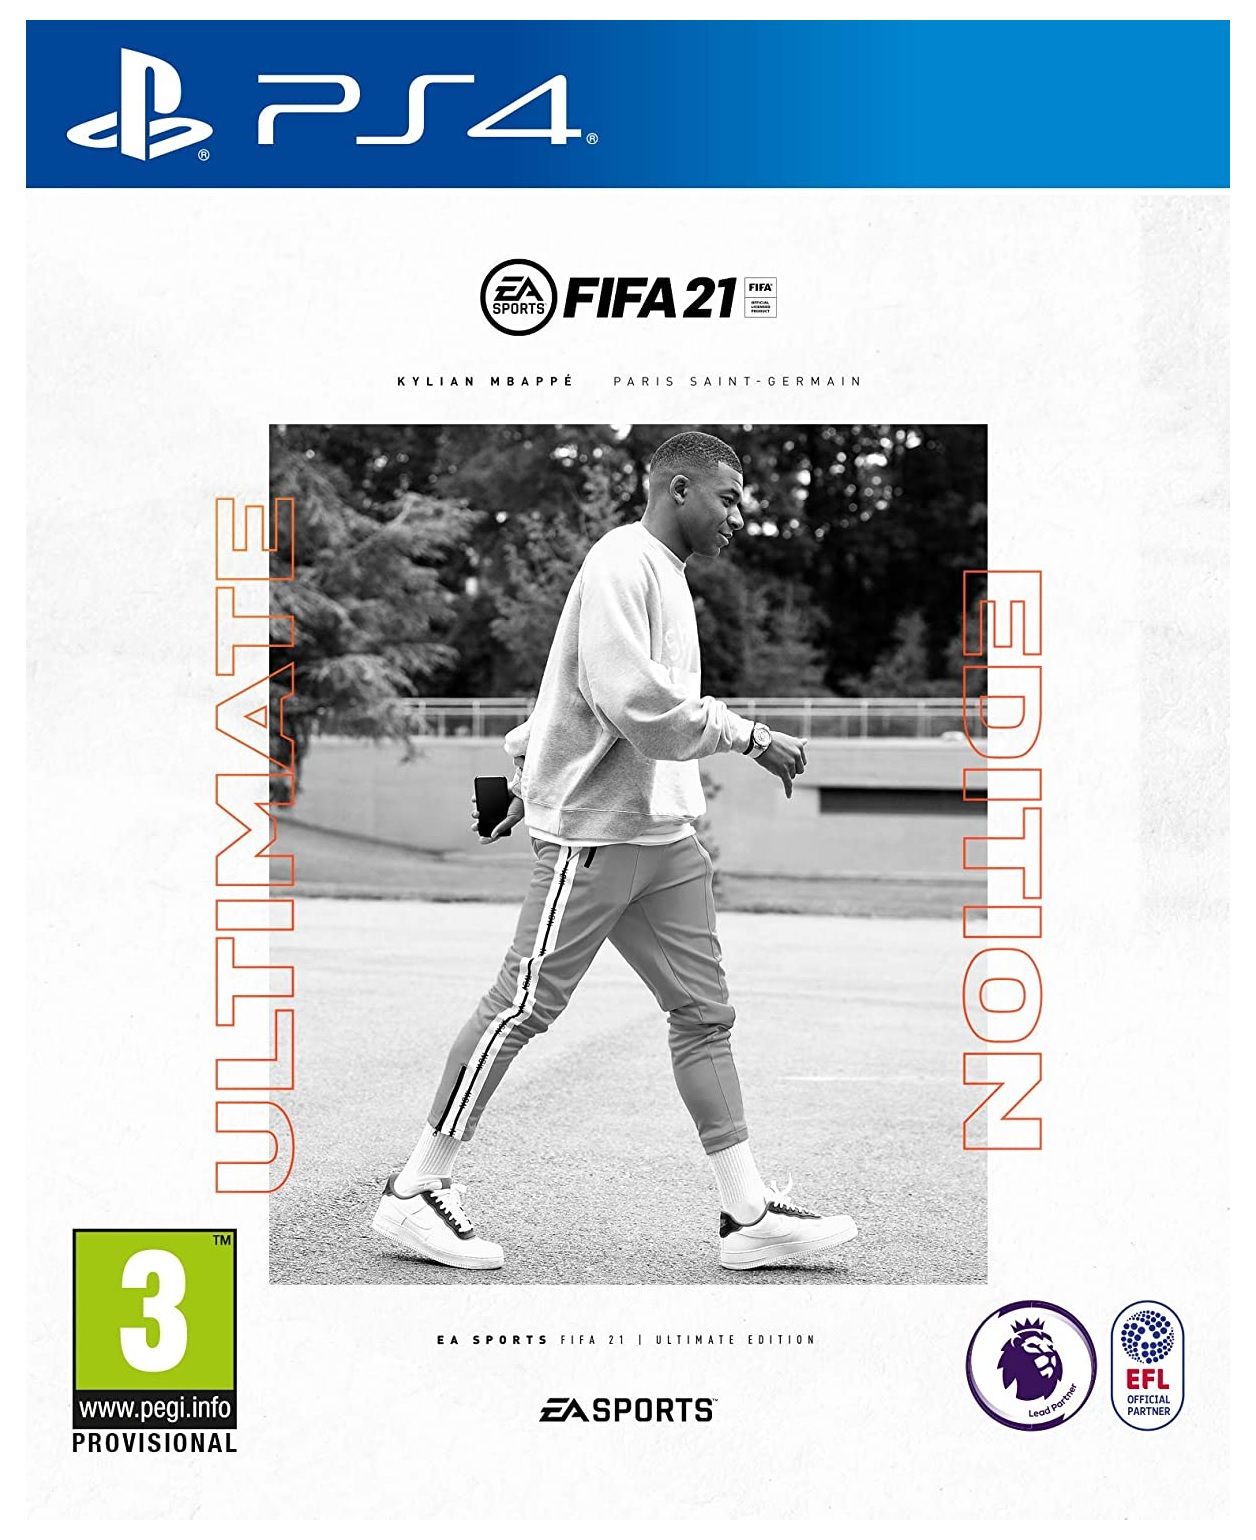 Electronic Arts FIFA 21 Ultimate Edition Refurbished PS4 Playstation 4 Game